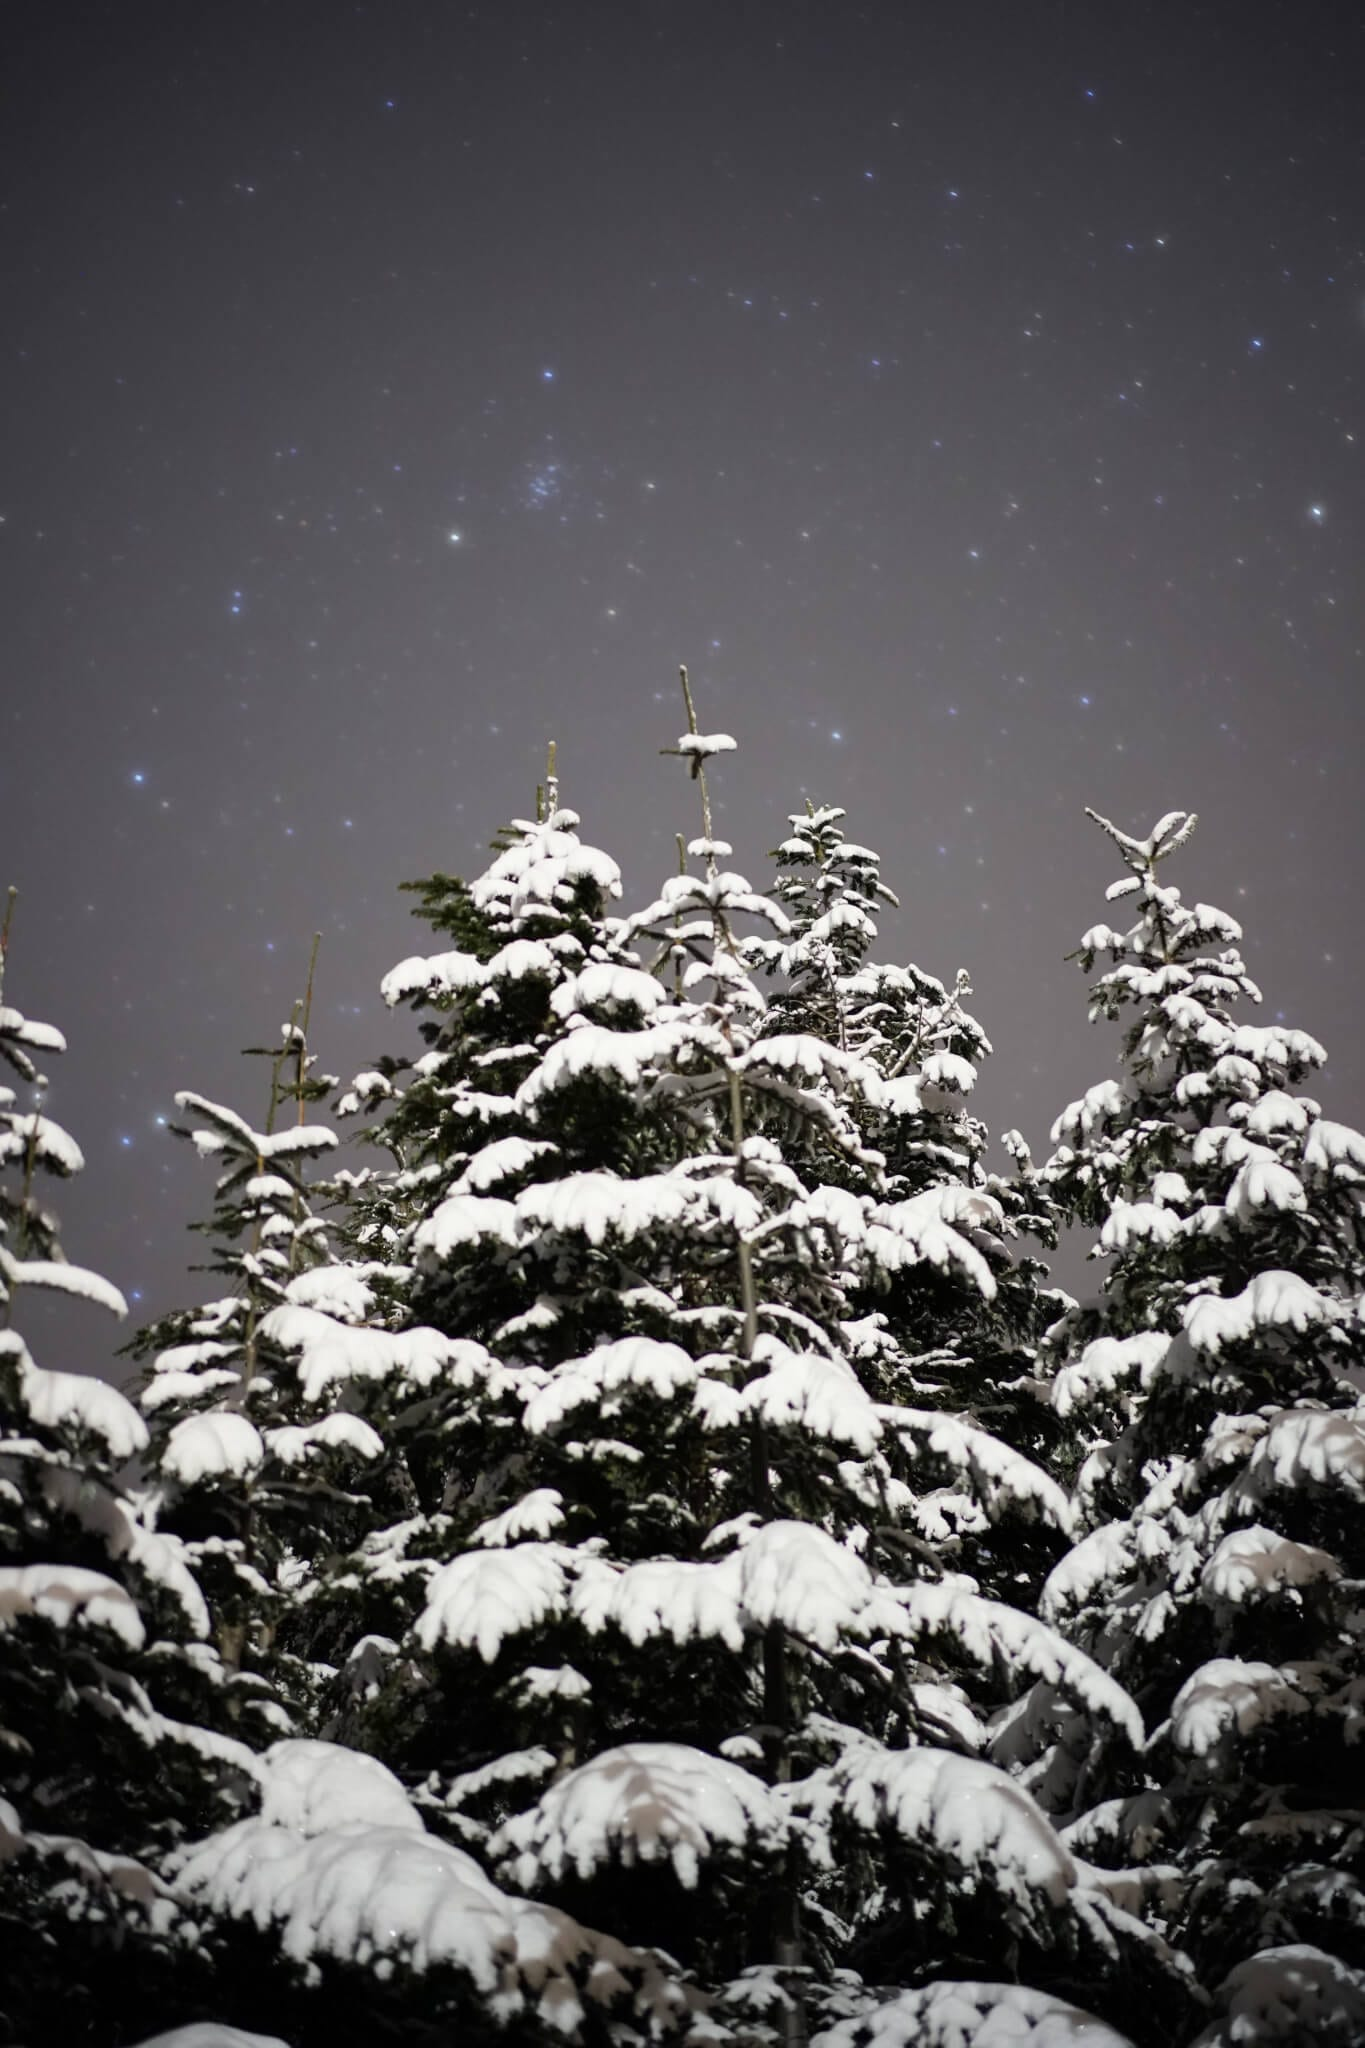 Snow Covering Winter Pine Trees